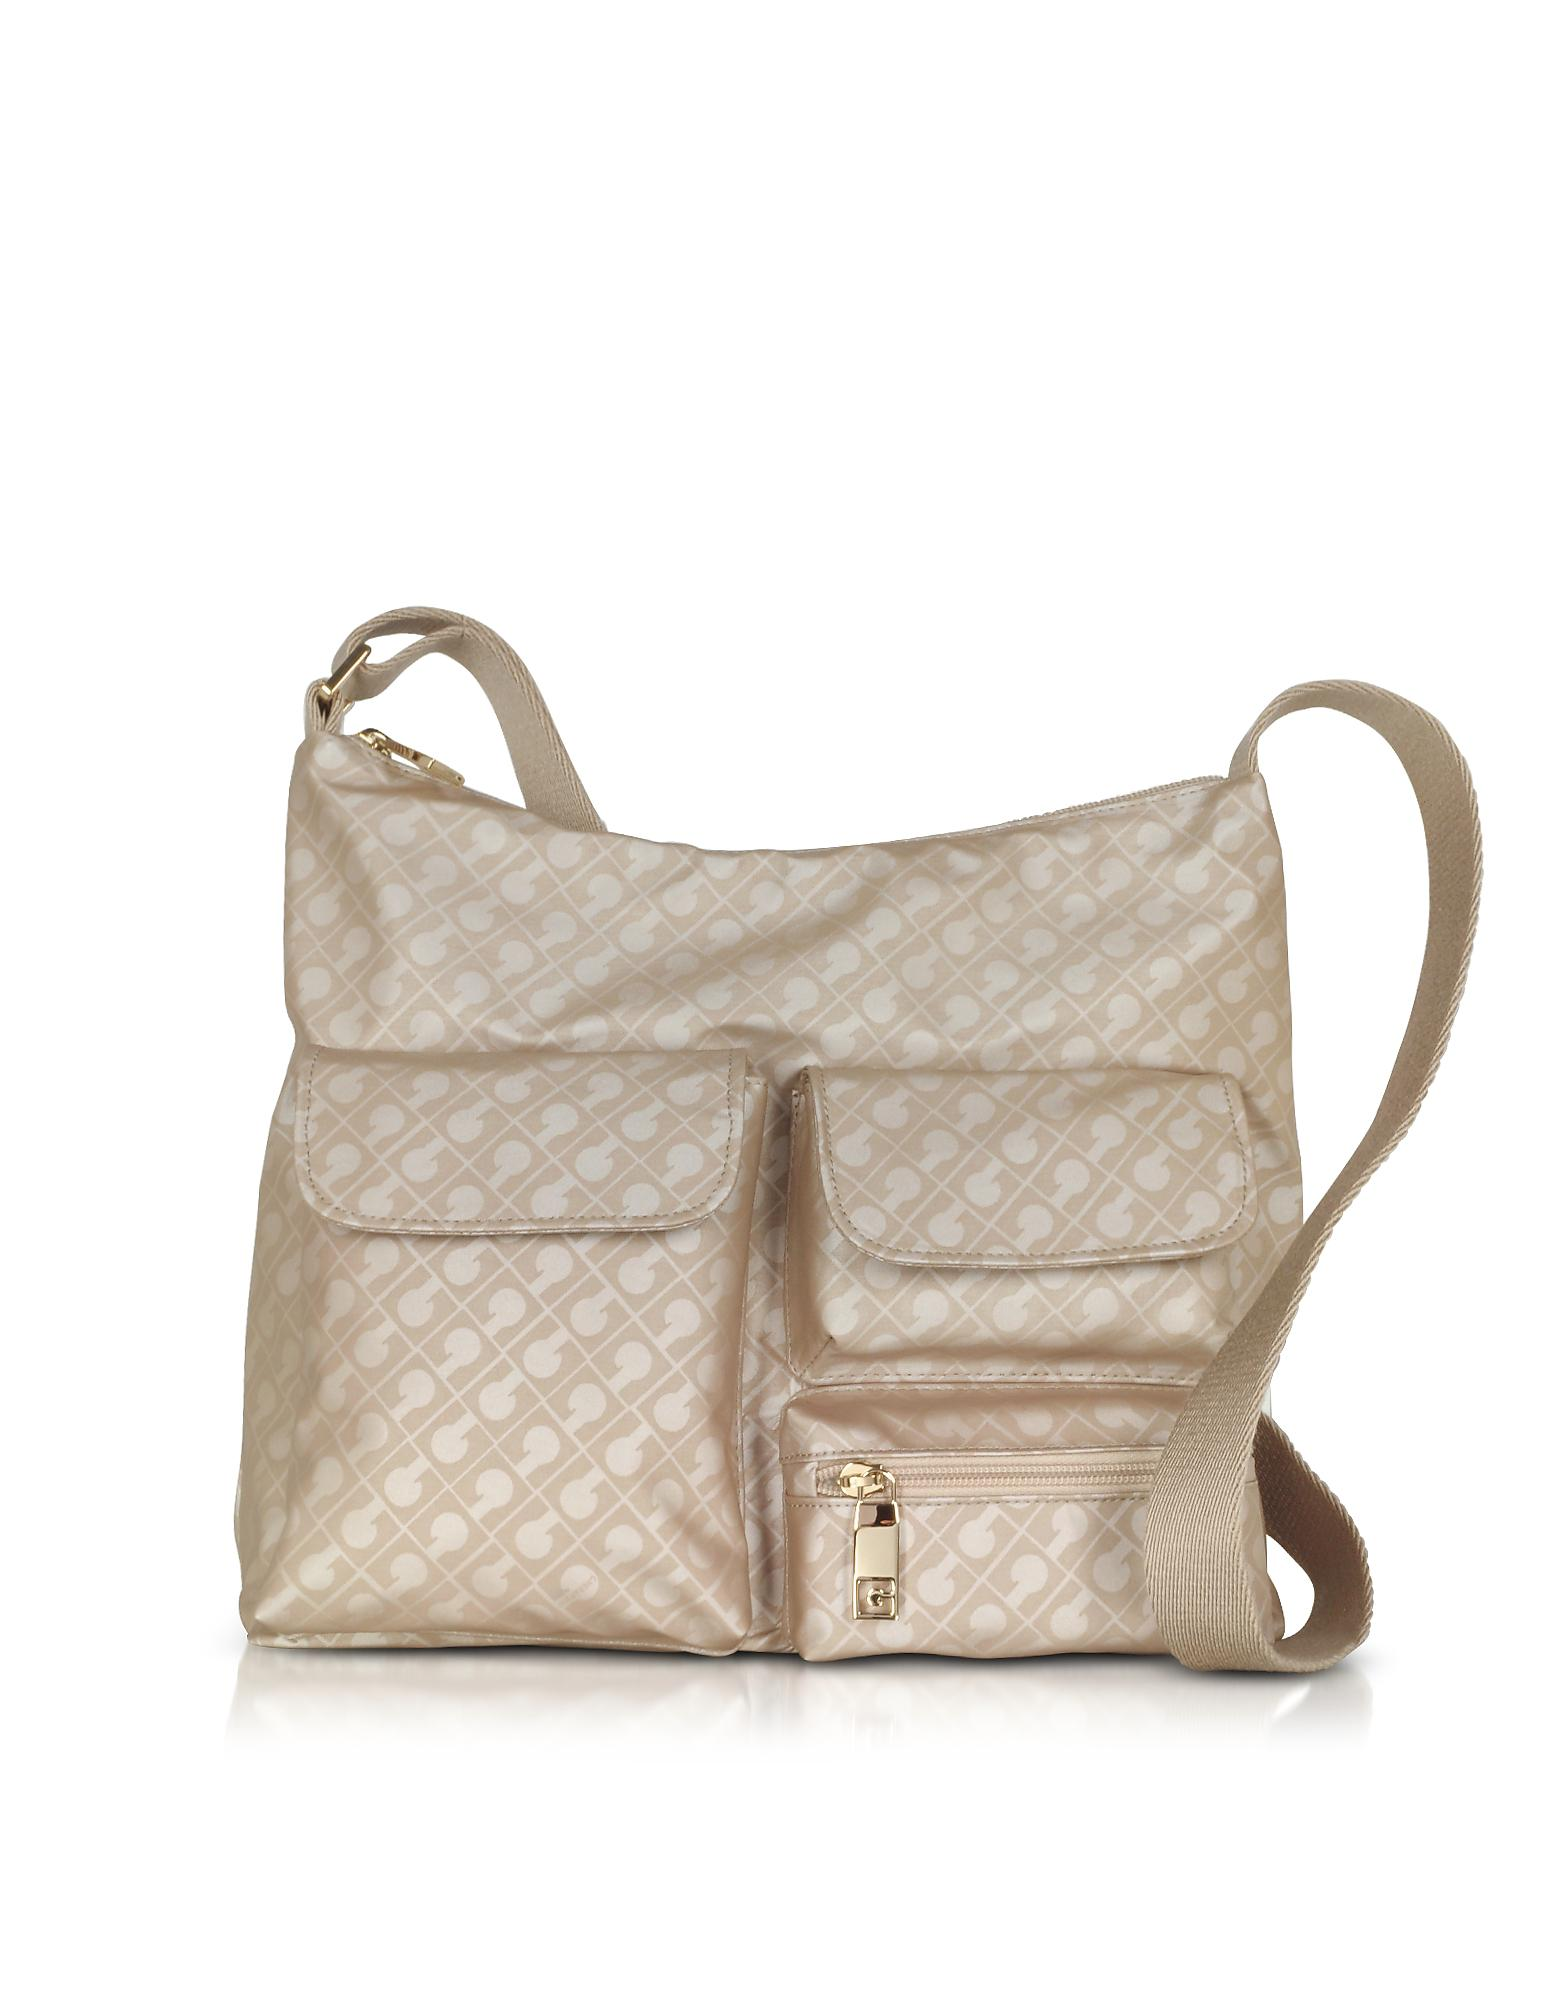 GHERARDINI Handbags, Clay Signature Fabric and Leather Softy Shoulder Bag